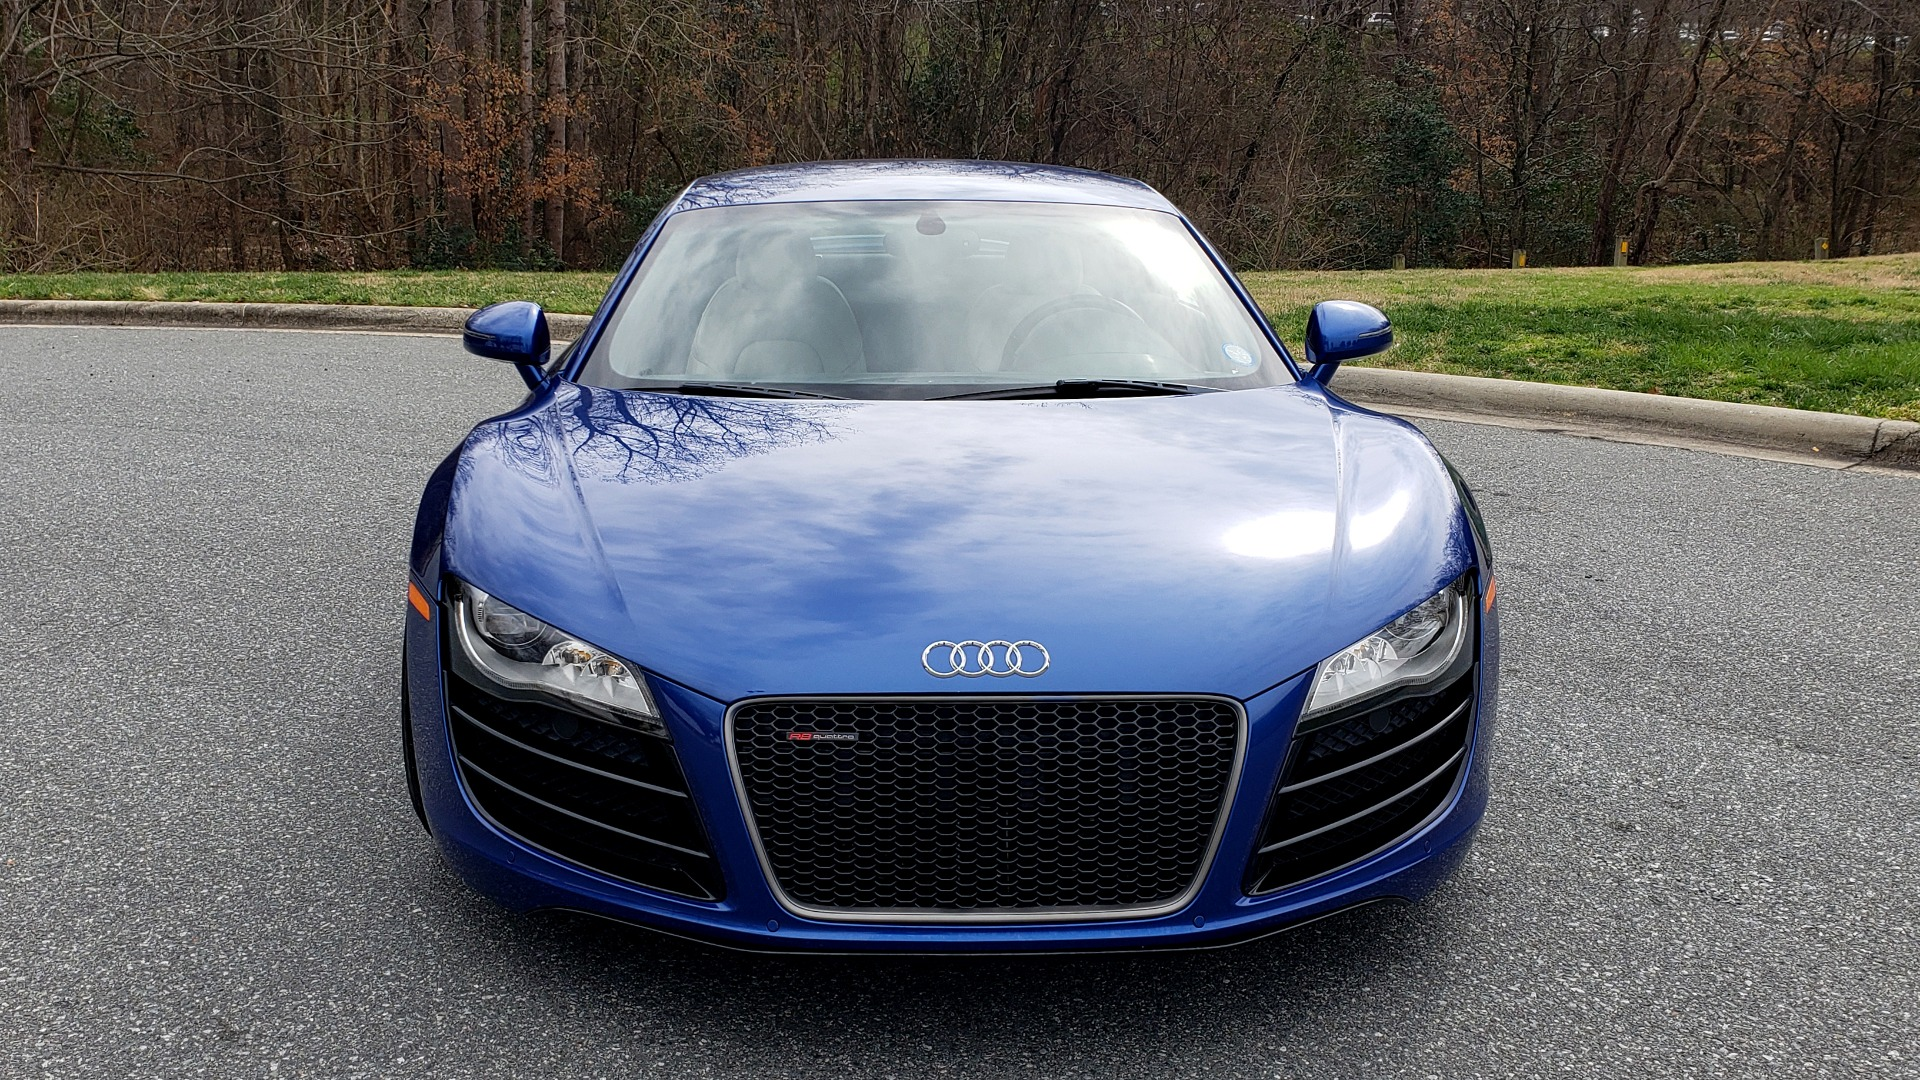 Used 2010 Audi R8 5.2L V10 / AWD / COUPE / NAV / 6-SPD AUTO / CUSTOM WHEELS for sale Sold at Formula Imports in Charlotte NC 28227 24